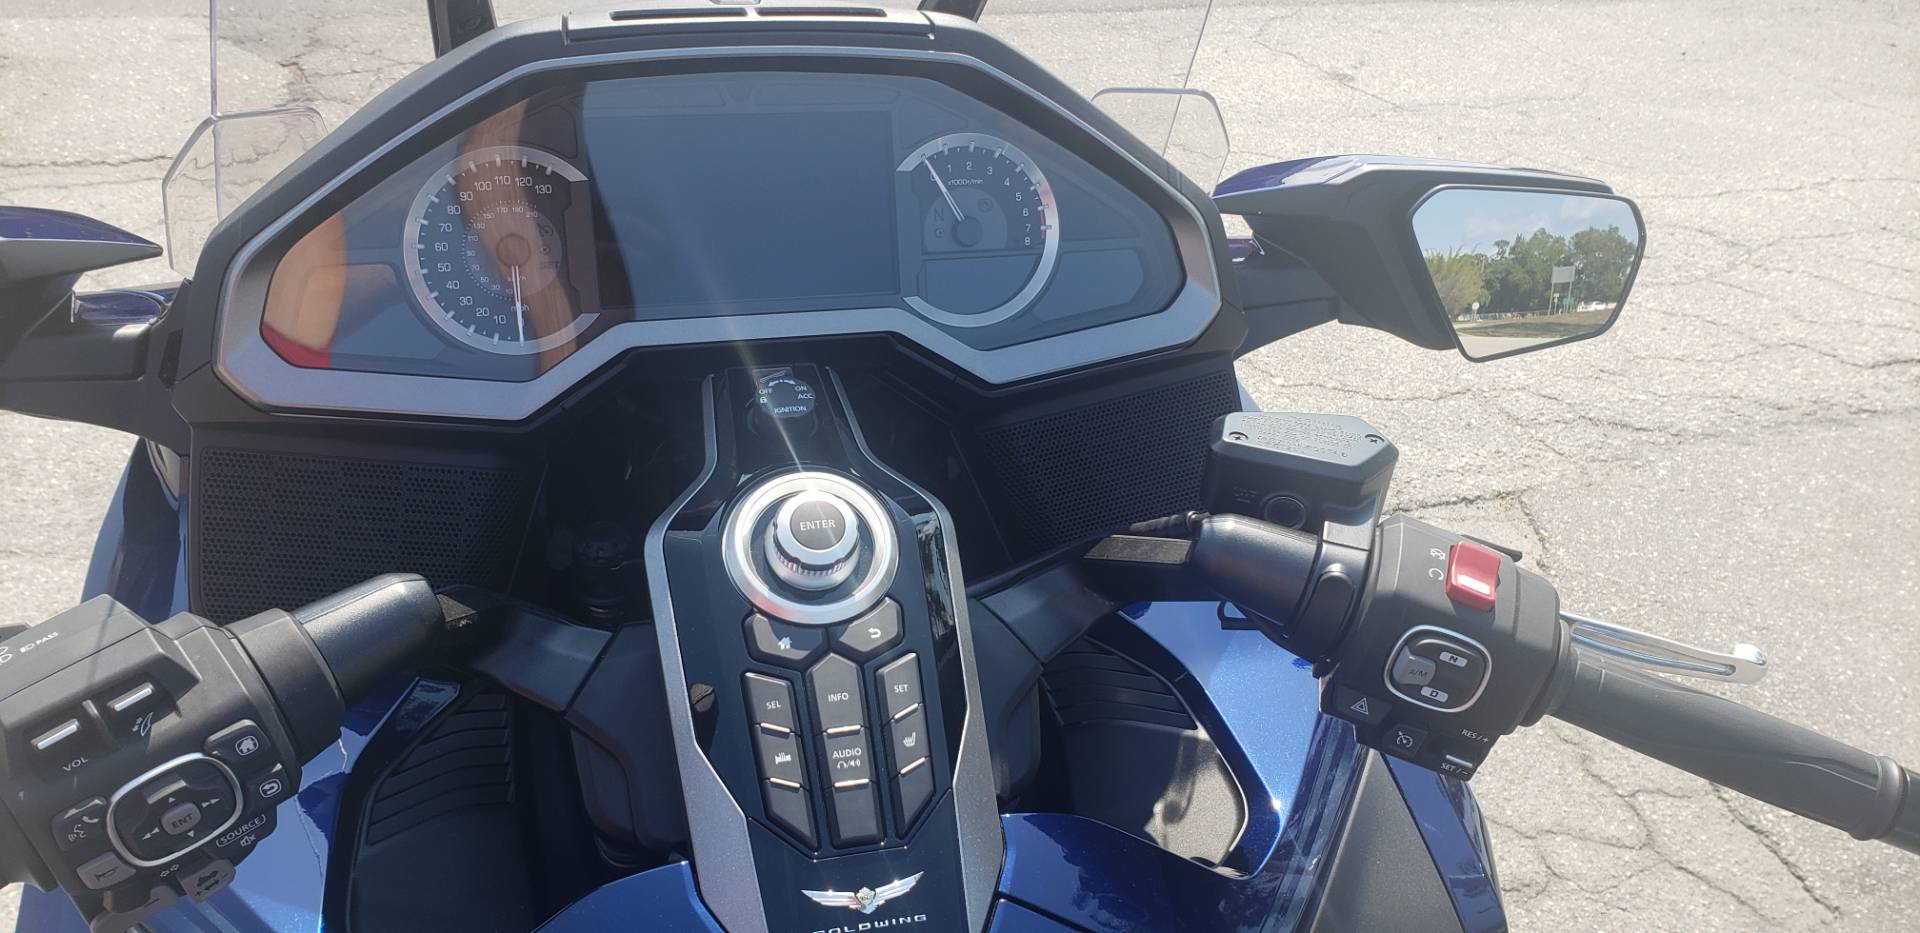 2018 HONDA Goldwing in Fort Myers, Florida - Photo 7